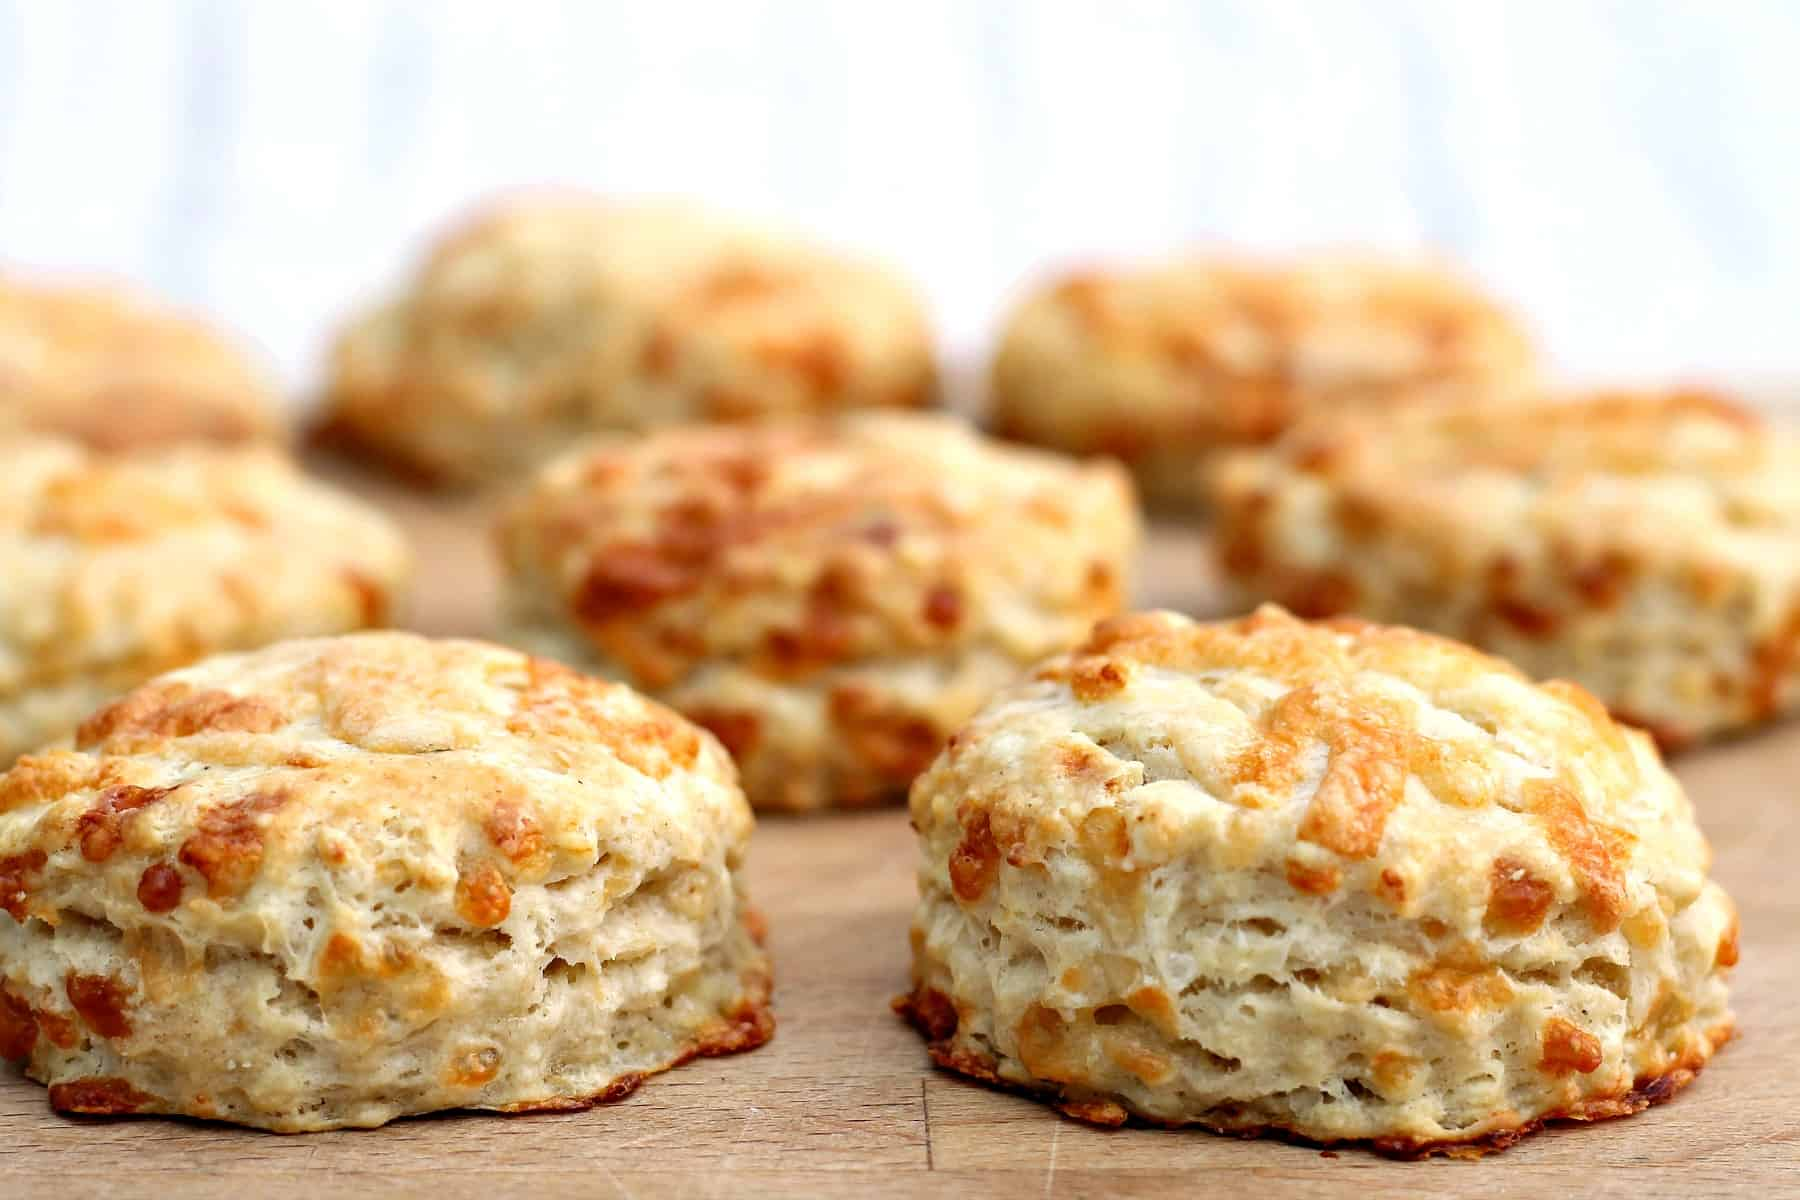 Close up of scones on a wooden board, from the side.